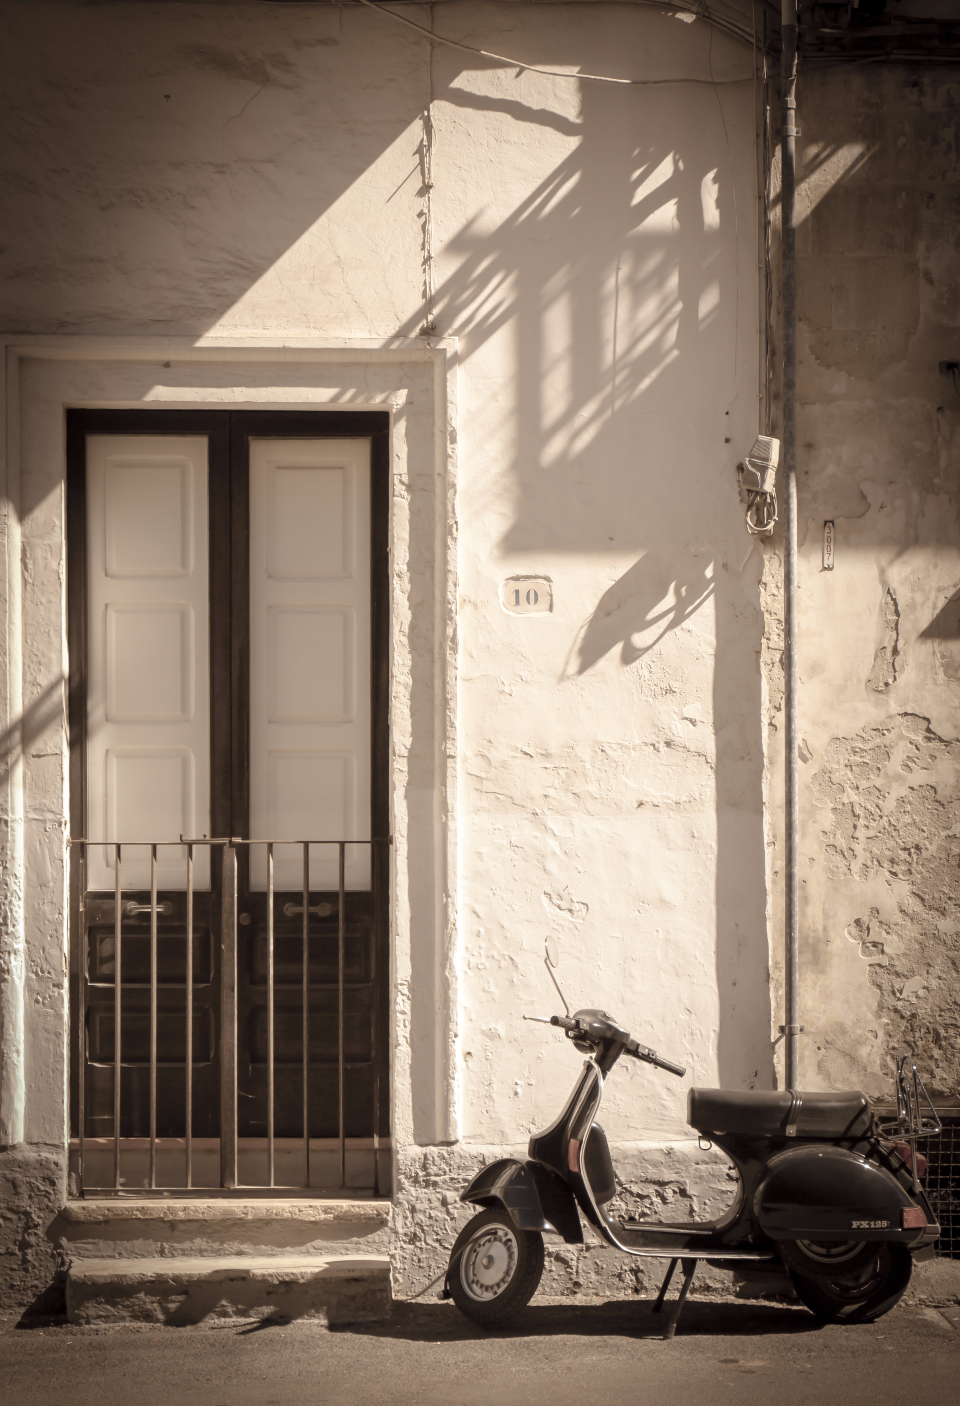 scooter door doorstep dolce vita italy sepia vespa vintage transportation house home stone entrance black and white city architecture building